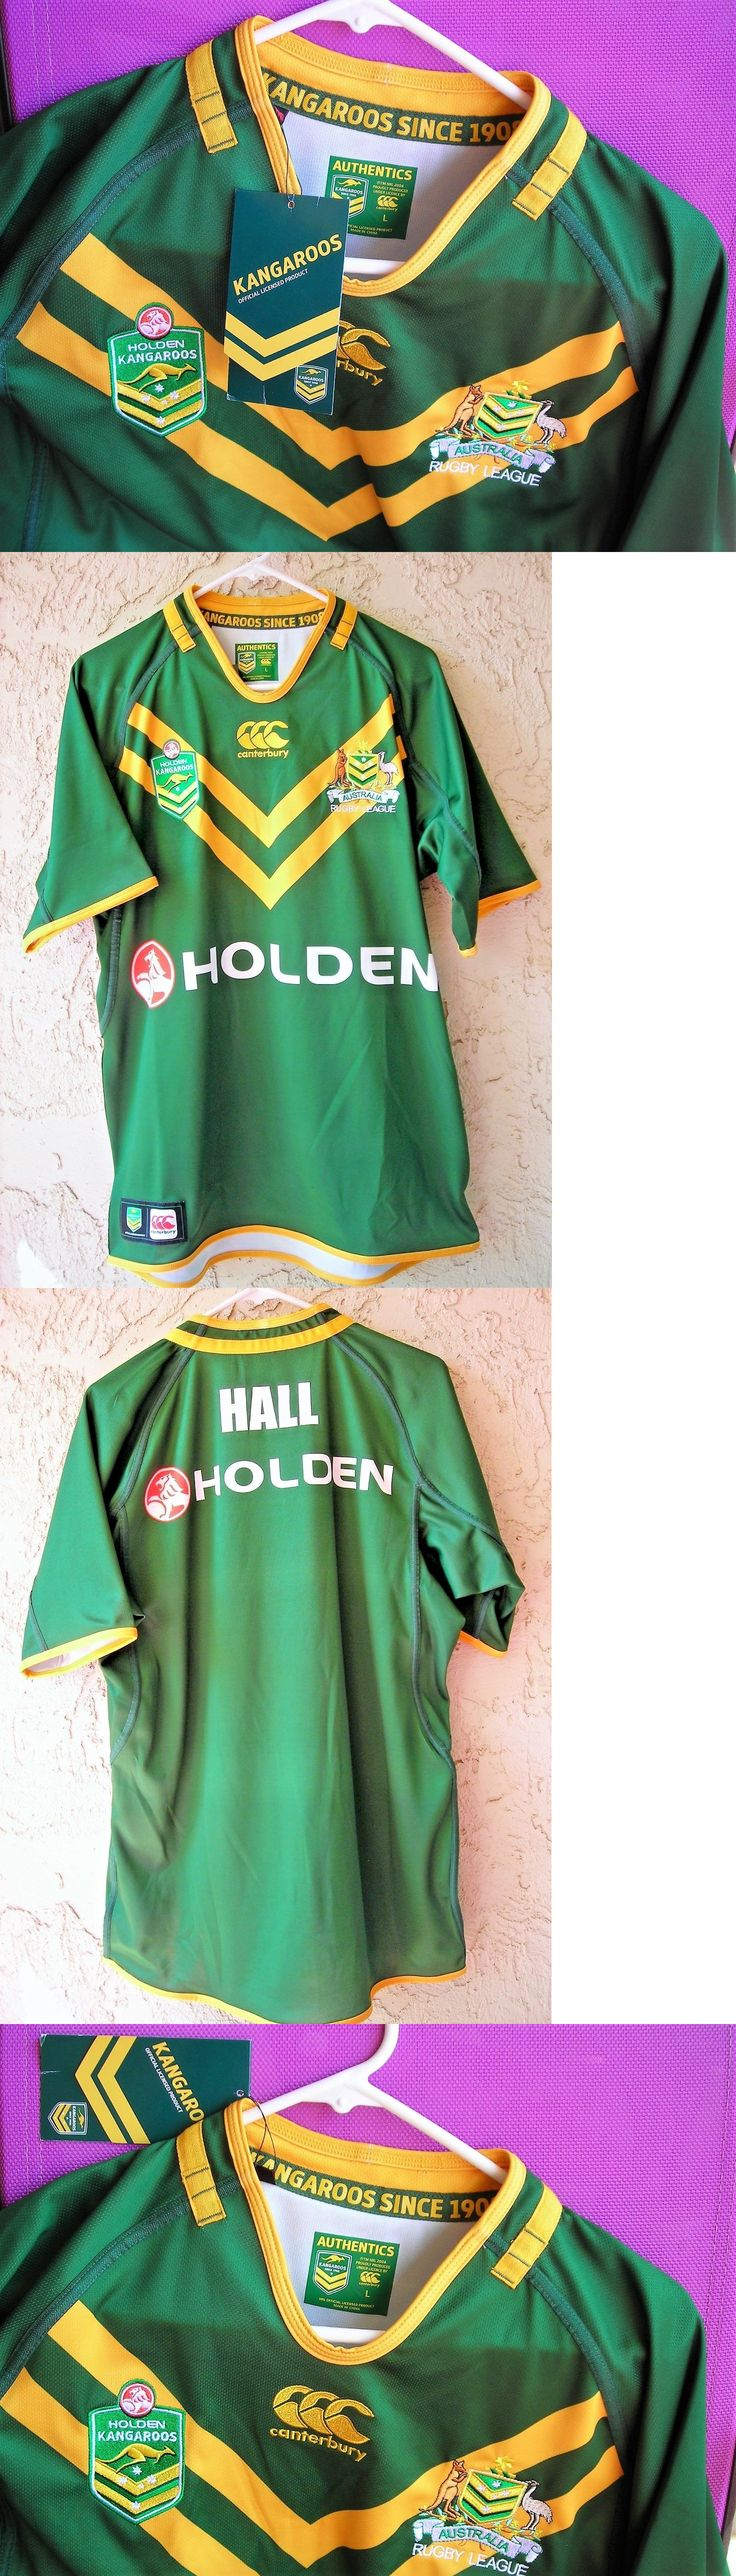 Rugby 21563: Australian Holden Kangaroos Rugby League Mens Classic Jersey Size Large Nwt -> BUY IT NOW ONLY: $59.99 on eBay!